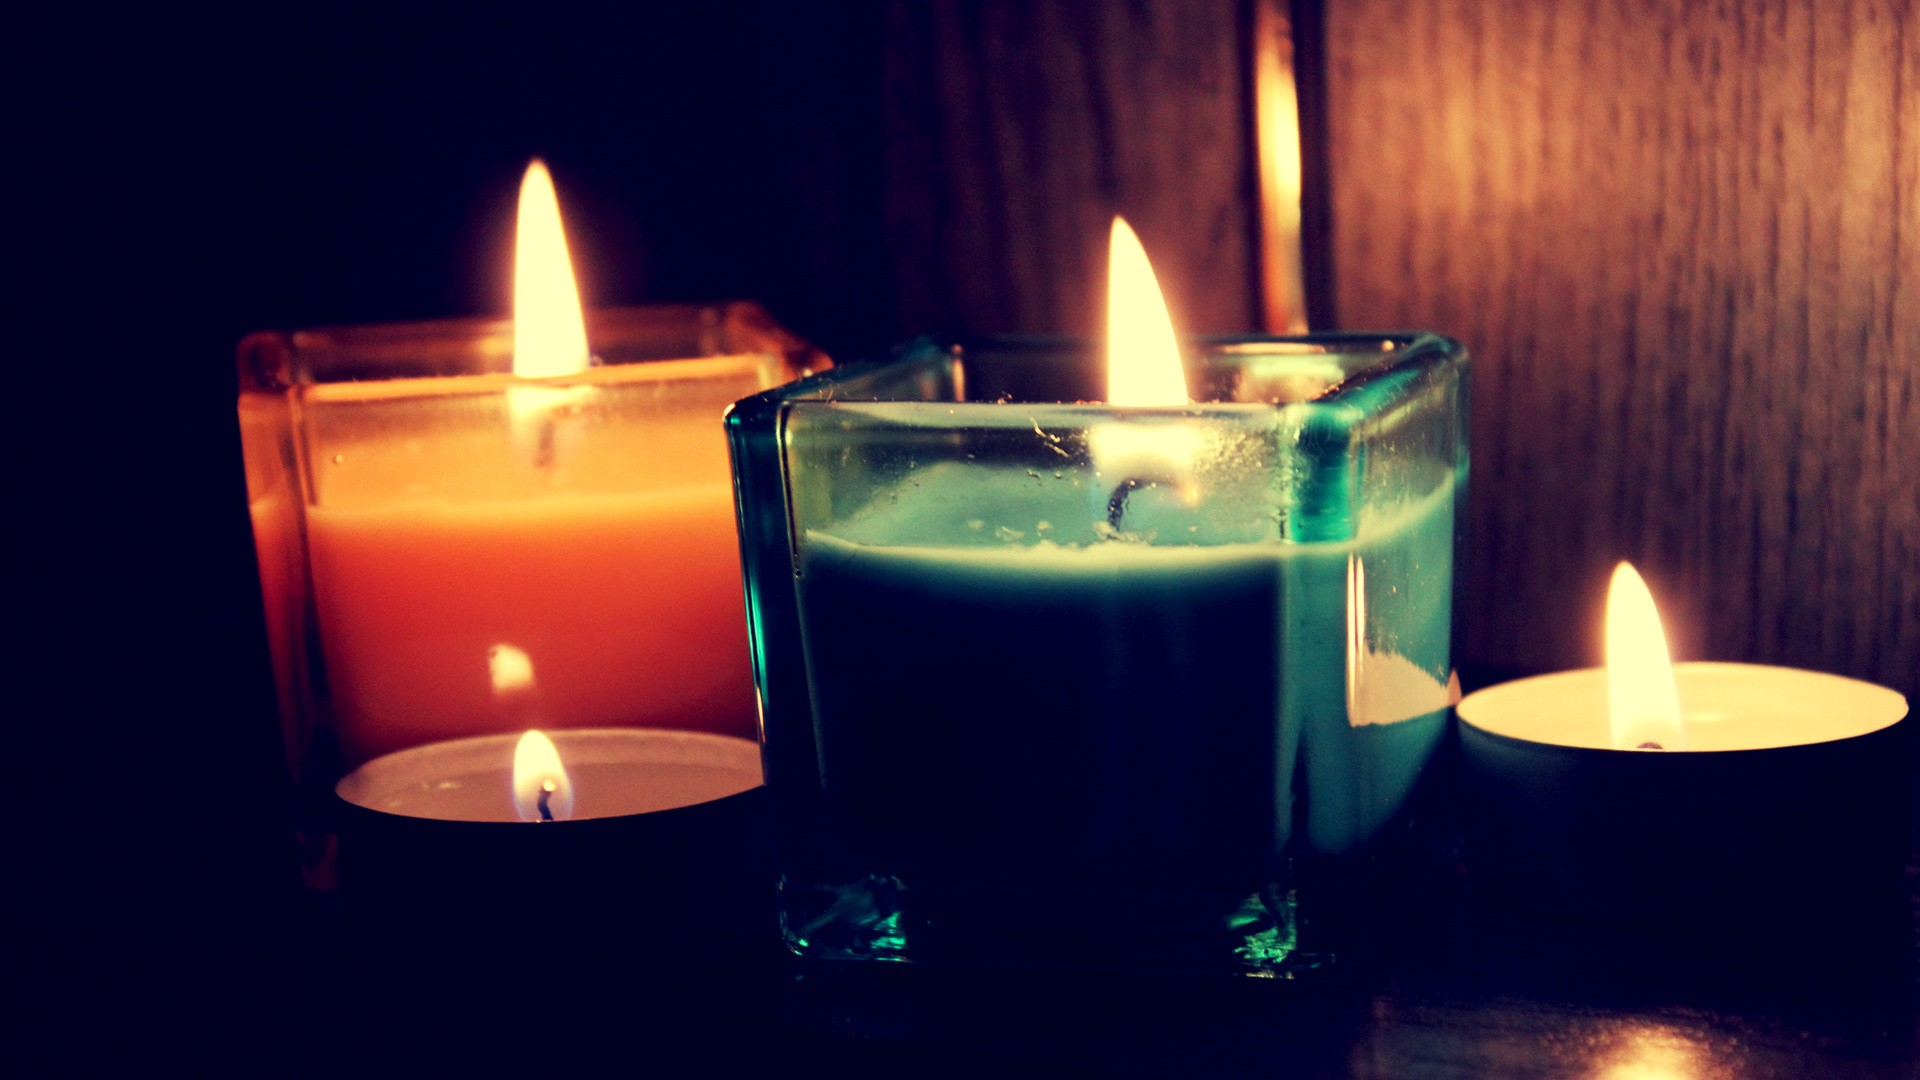 ws_Aromatic_Candles_1920x1080